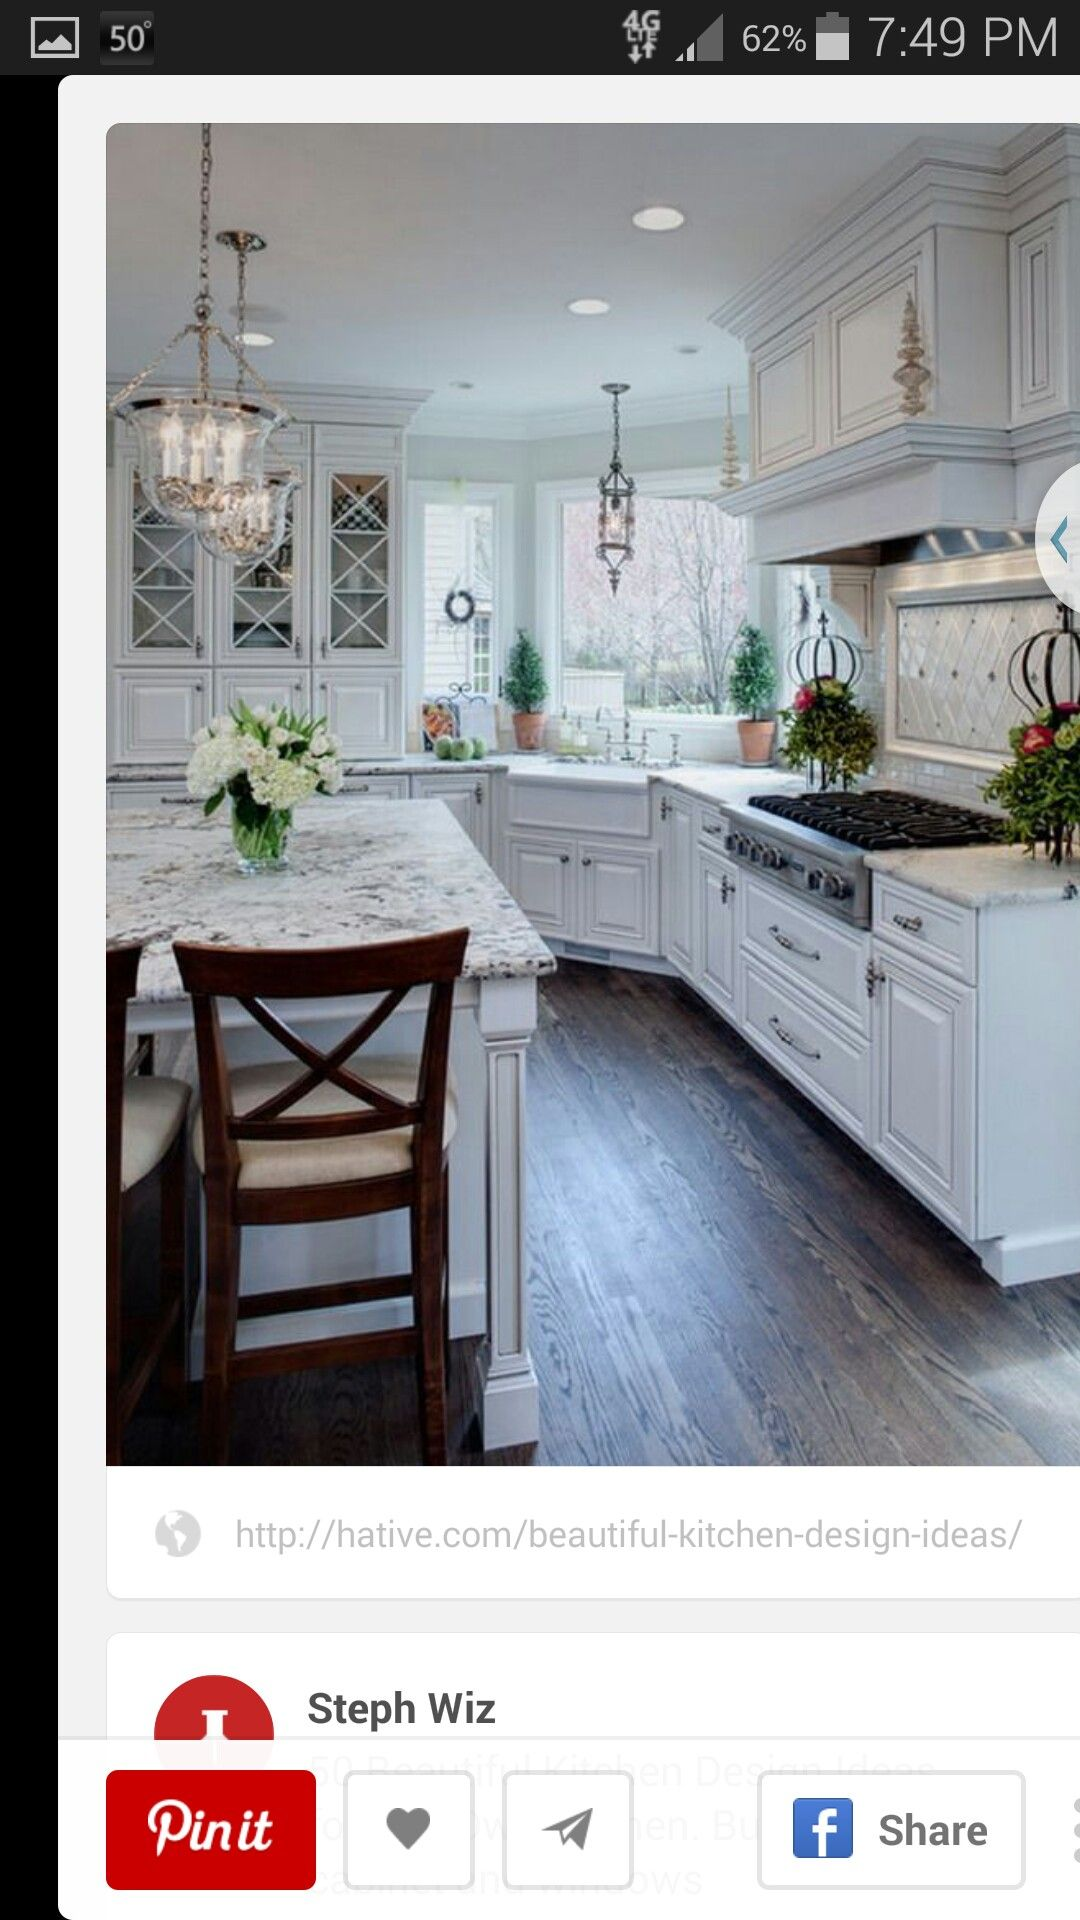 Kitchen sink without window  pin by darcy benson on home decor  pinterest